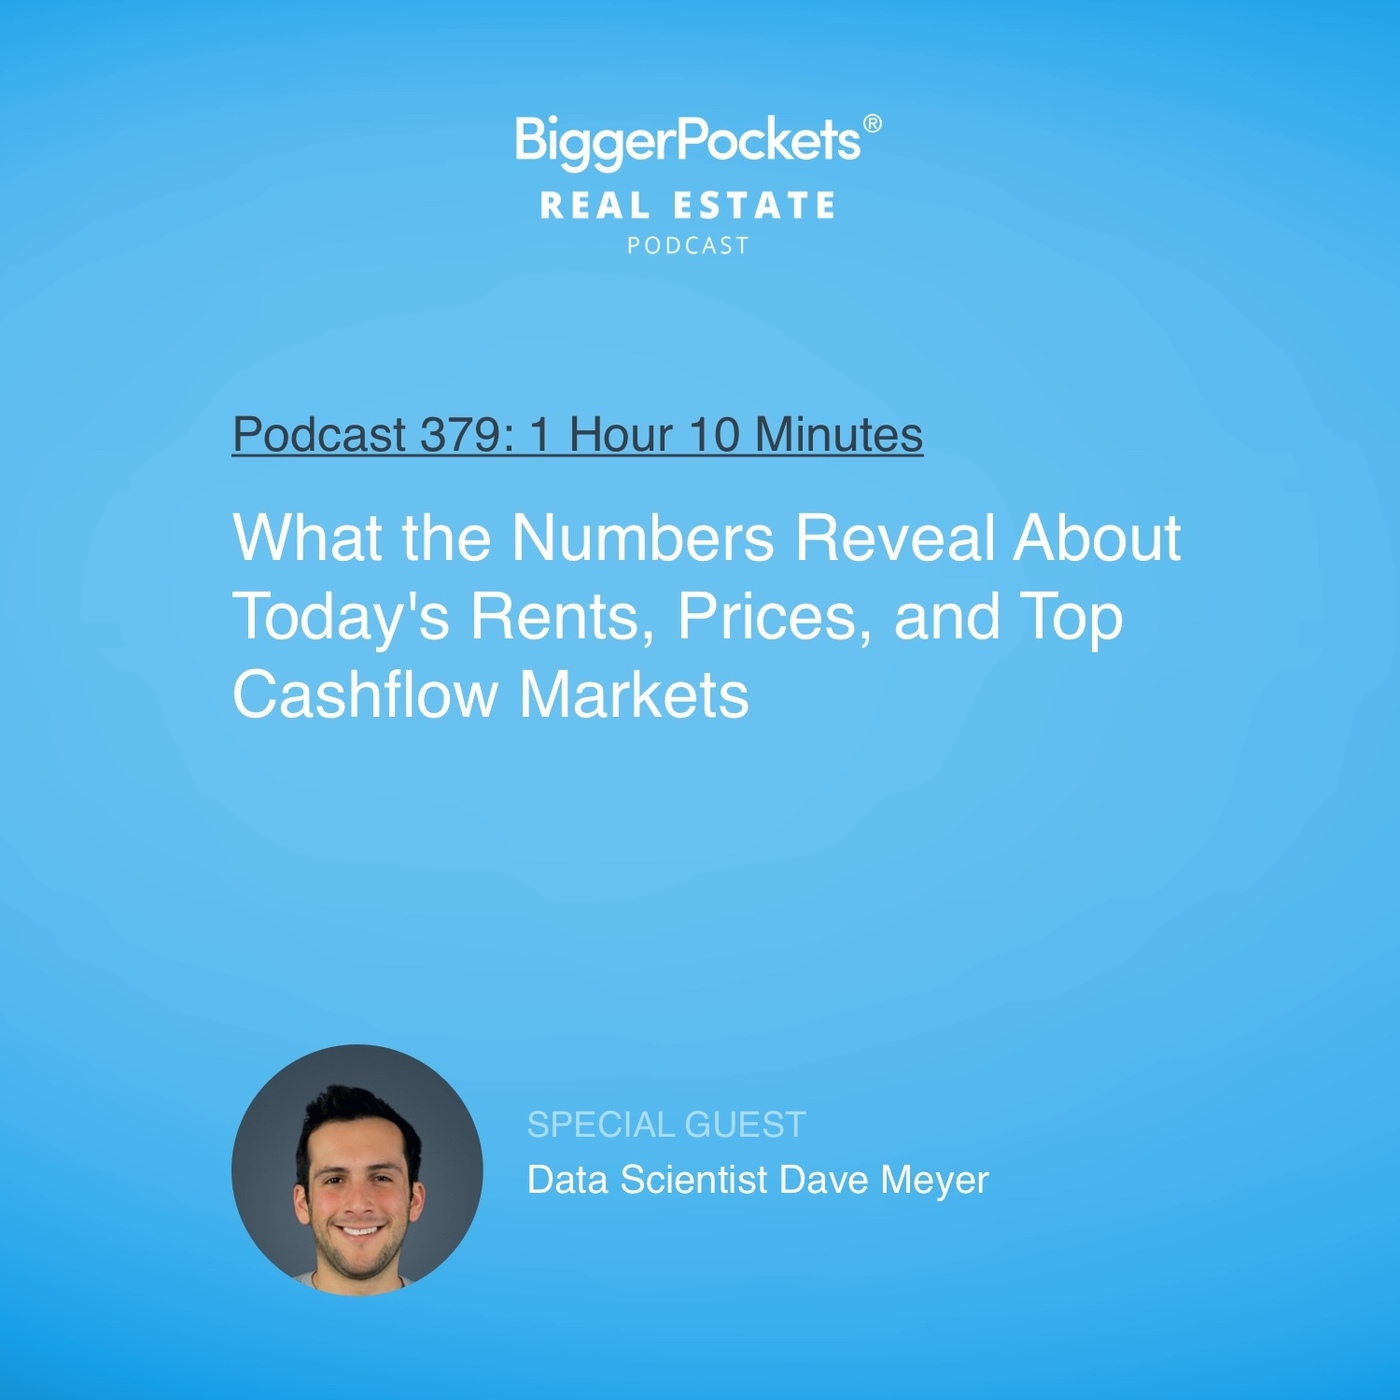 379: What the Numbers Reveal About Today's Rents, Prices, and Top Cashflow Markets with Data Scientist Dave Meyer